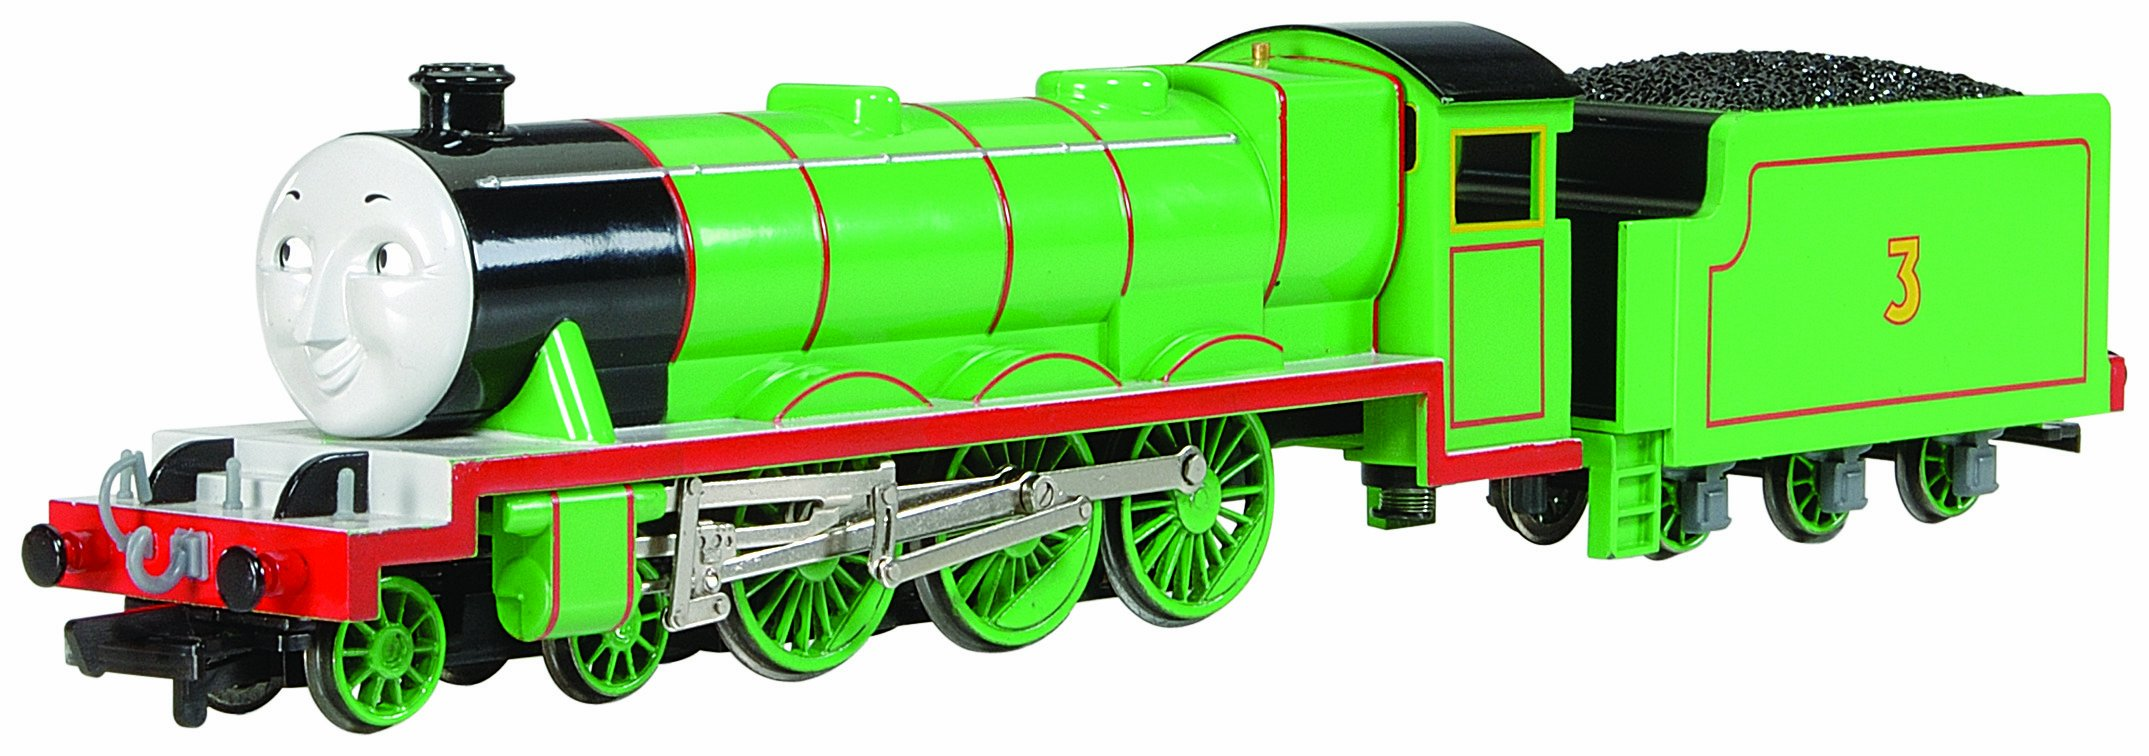 Bachmann Trains Thomas And Friends - Henry The Green Engine With Moving Eyes by Bachmann Trains (Image #1)